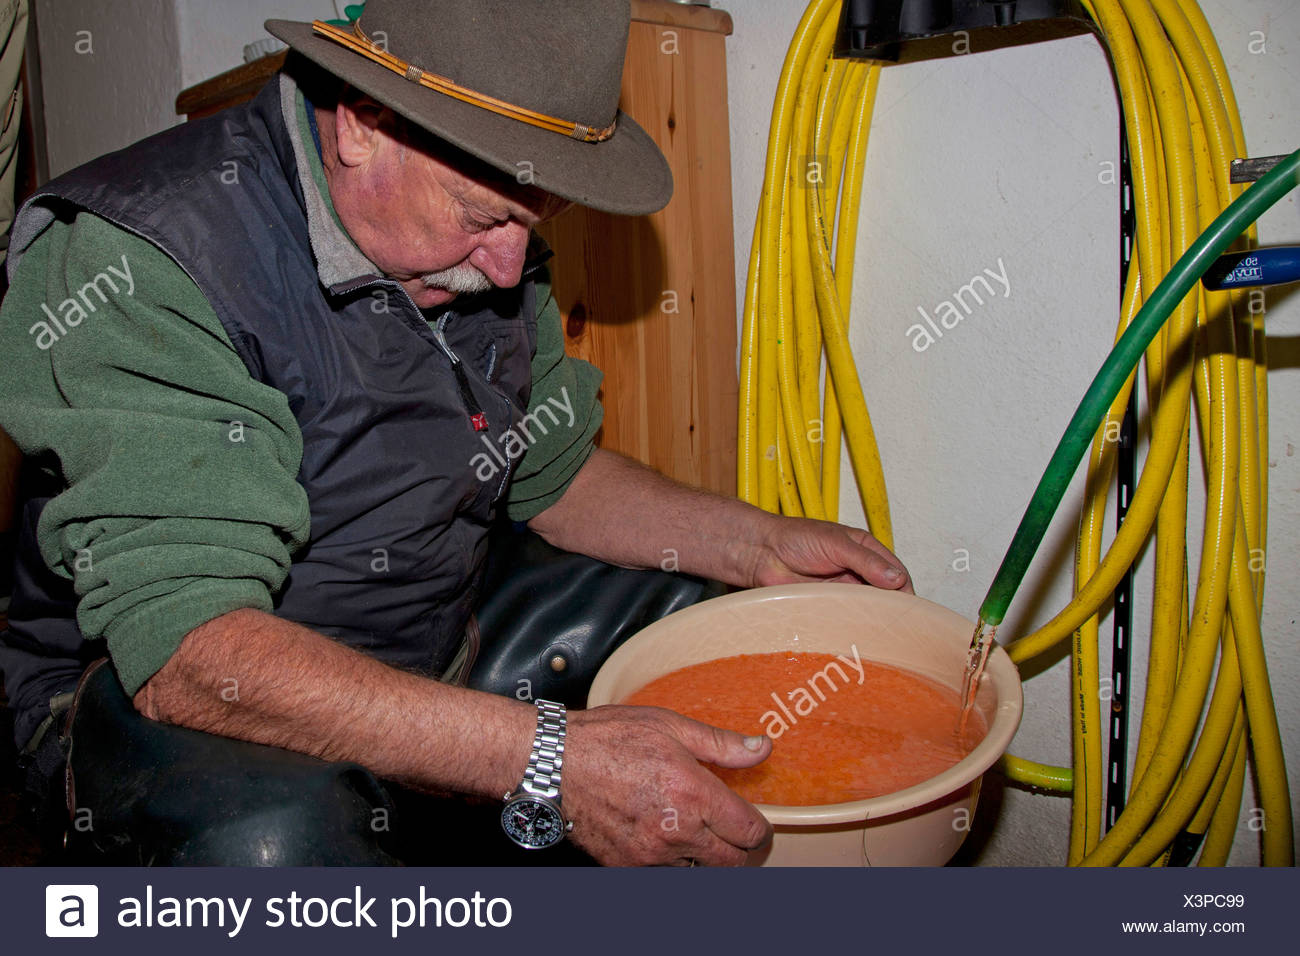 Marble trout (Salmo trutta), worker in a fish farm cleaning fertilised eggs in a pot - Stock Image